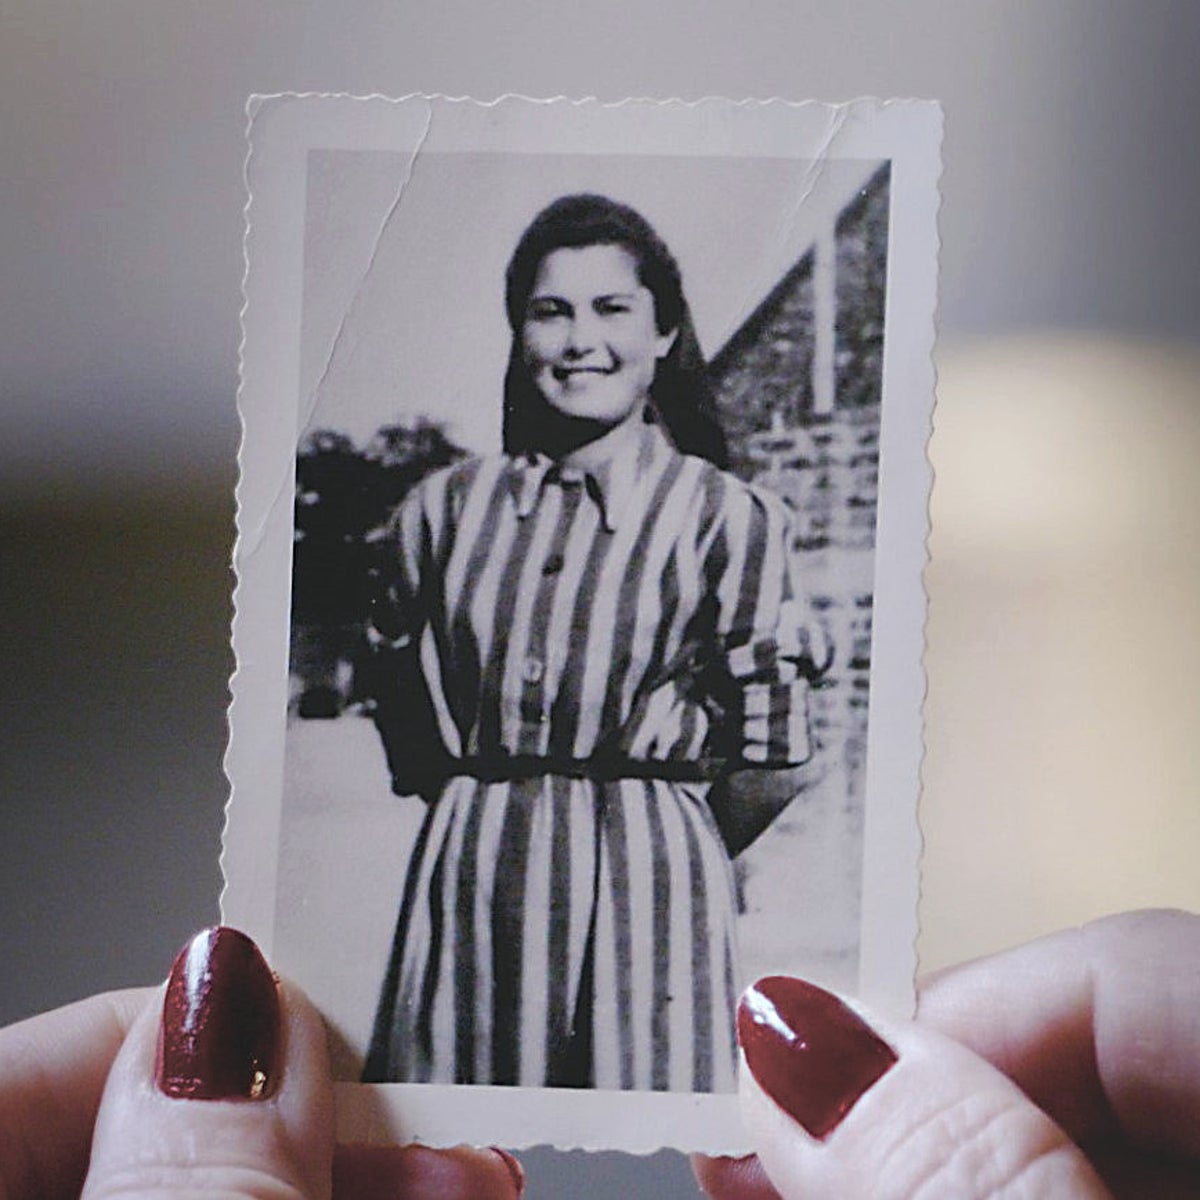 Helena Citron in Auschwitz. She is seen smiling, well-fed, standing straight and radiant in the photo, atypical for prisoners at the death camp.